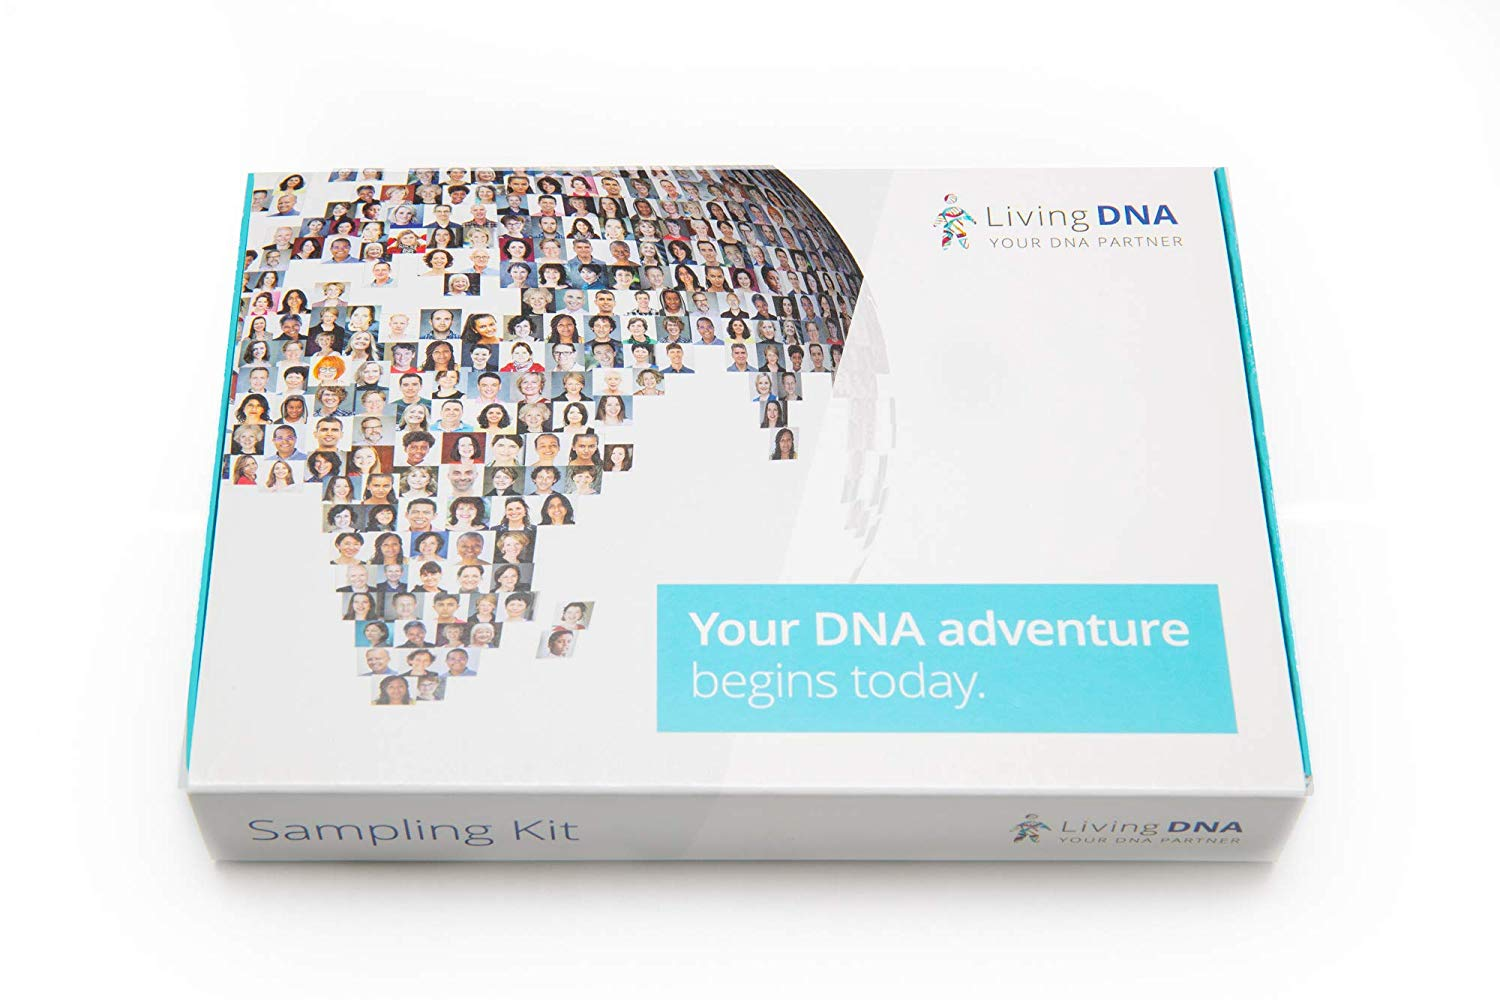 DNA Test Kit available at Sequencing.com